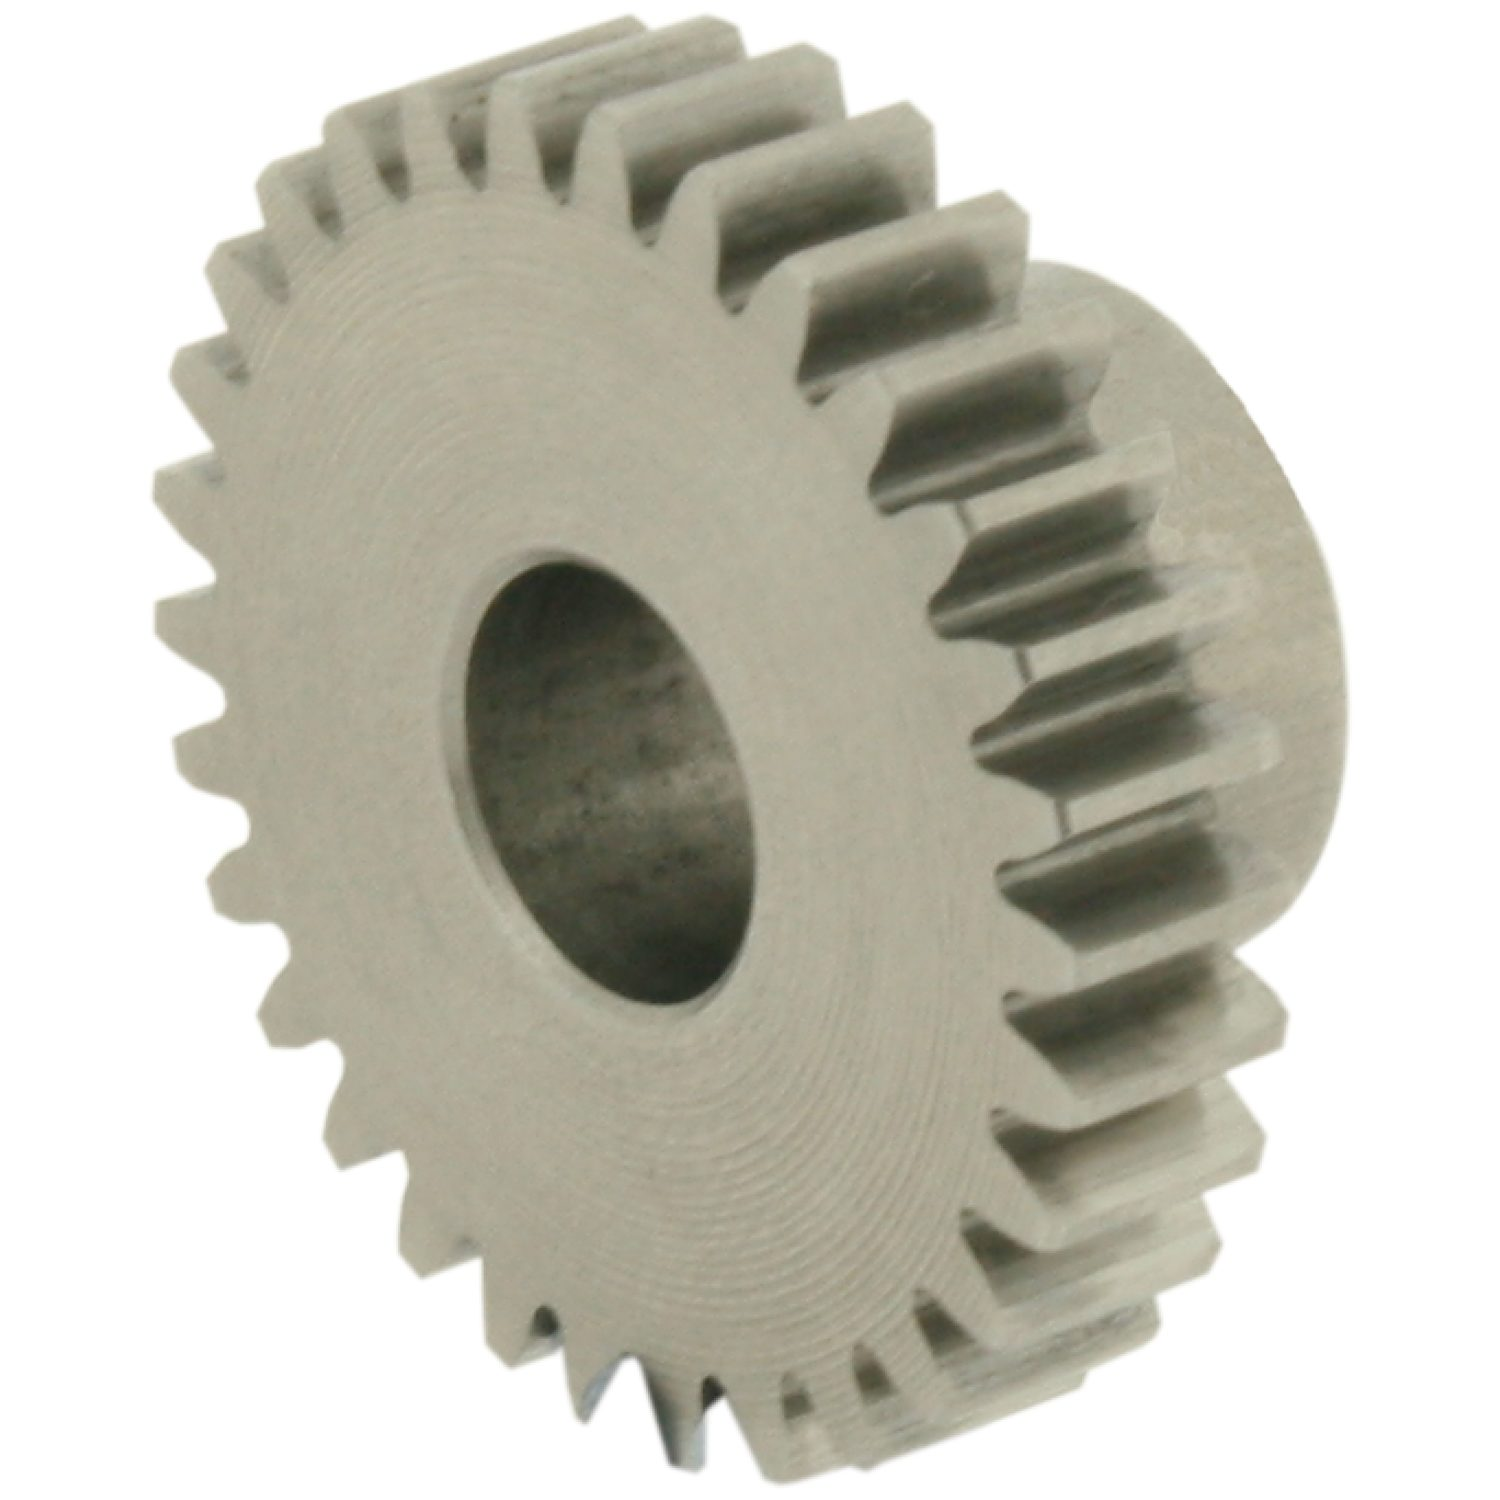 Spur gears 1,5 to 0,8 module